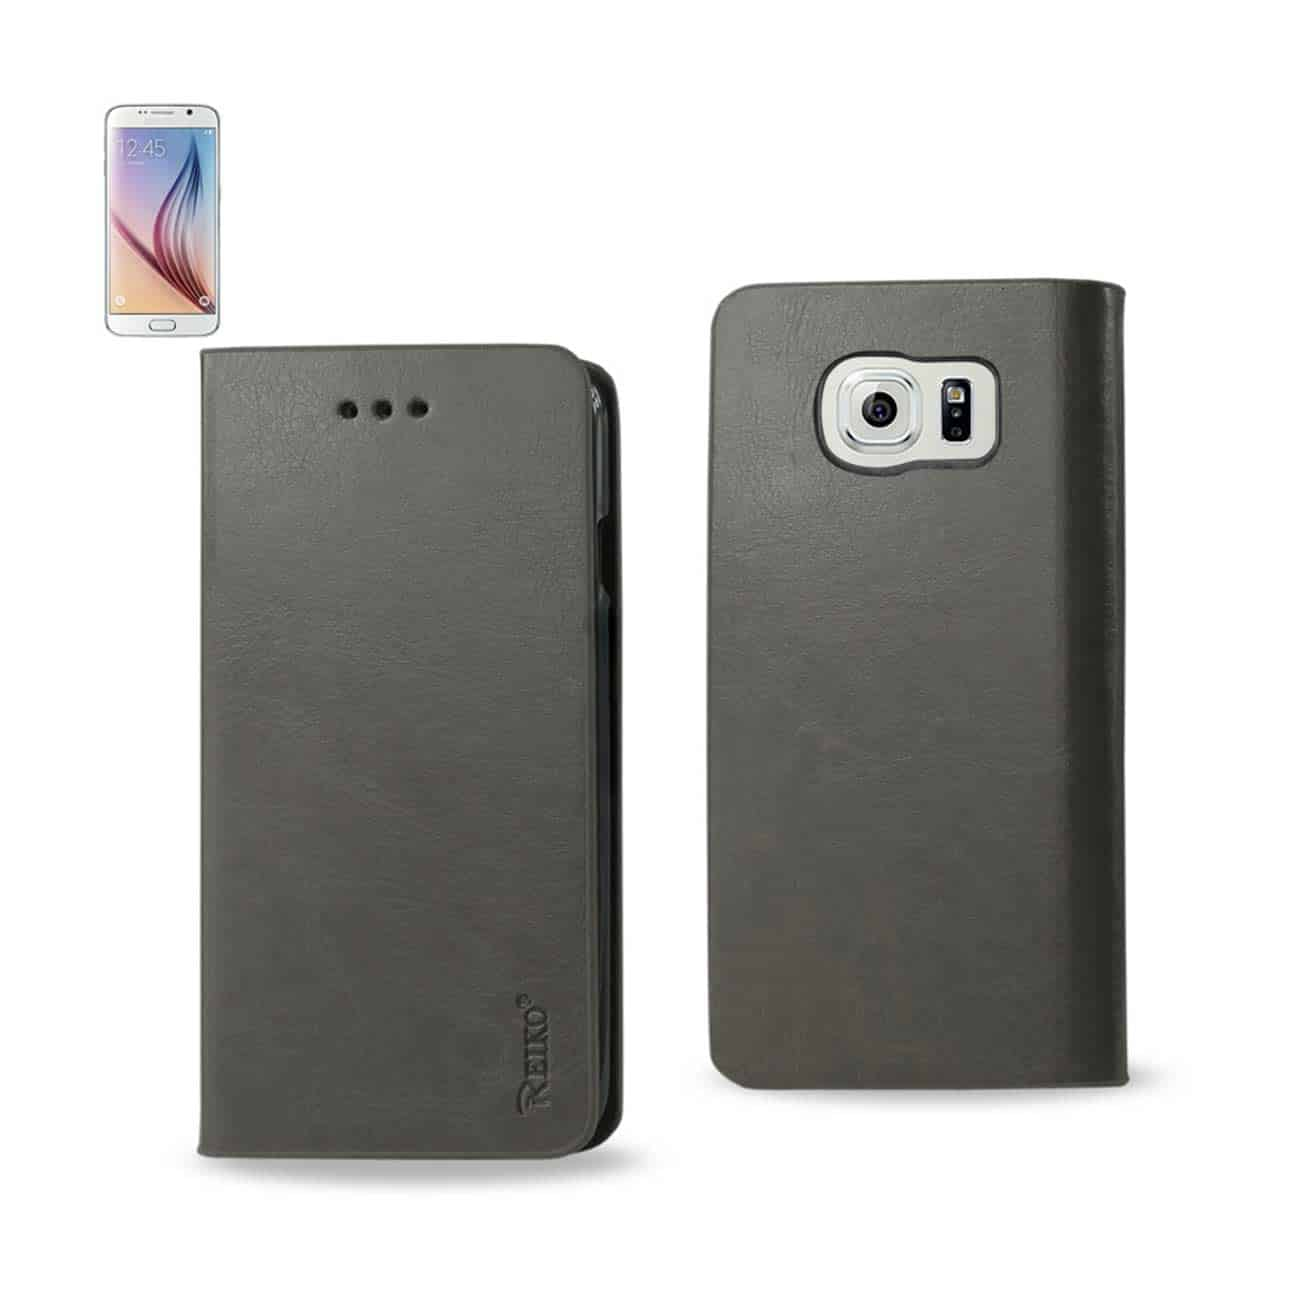 SAMSUNG GALAXY S6 FLIP FOLIO CASE WITH CARD HOLDER IN GRAY